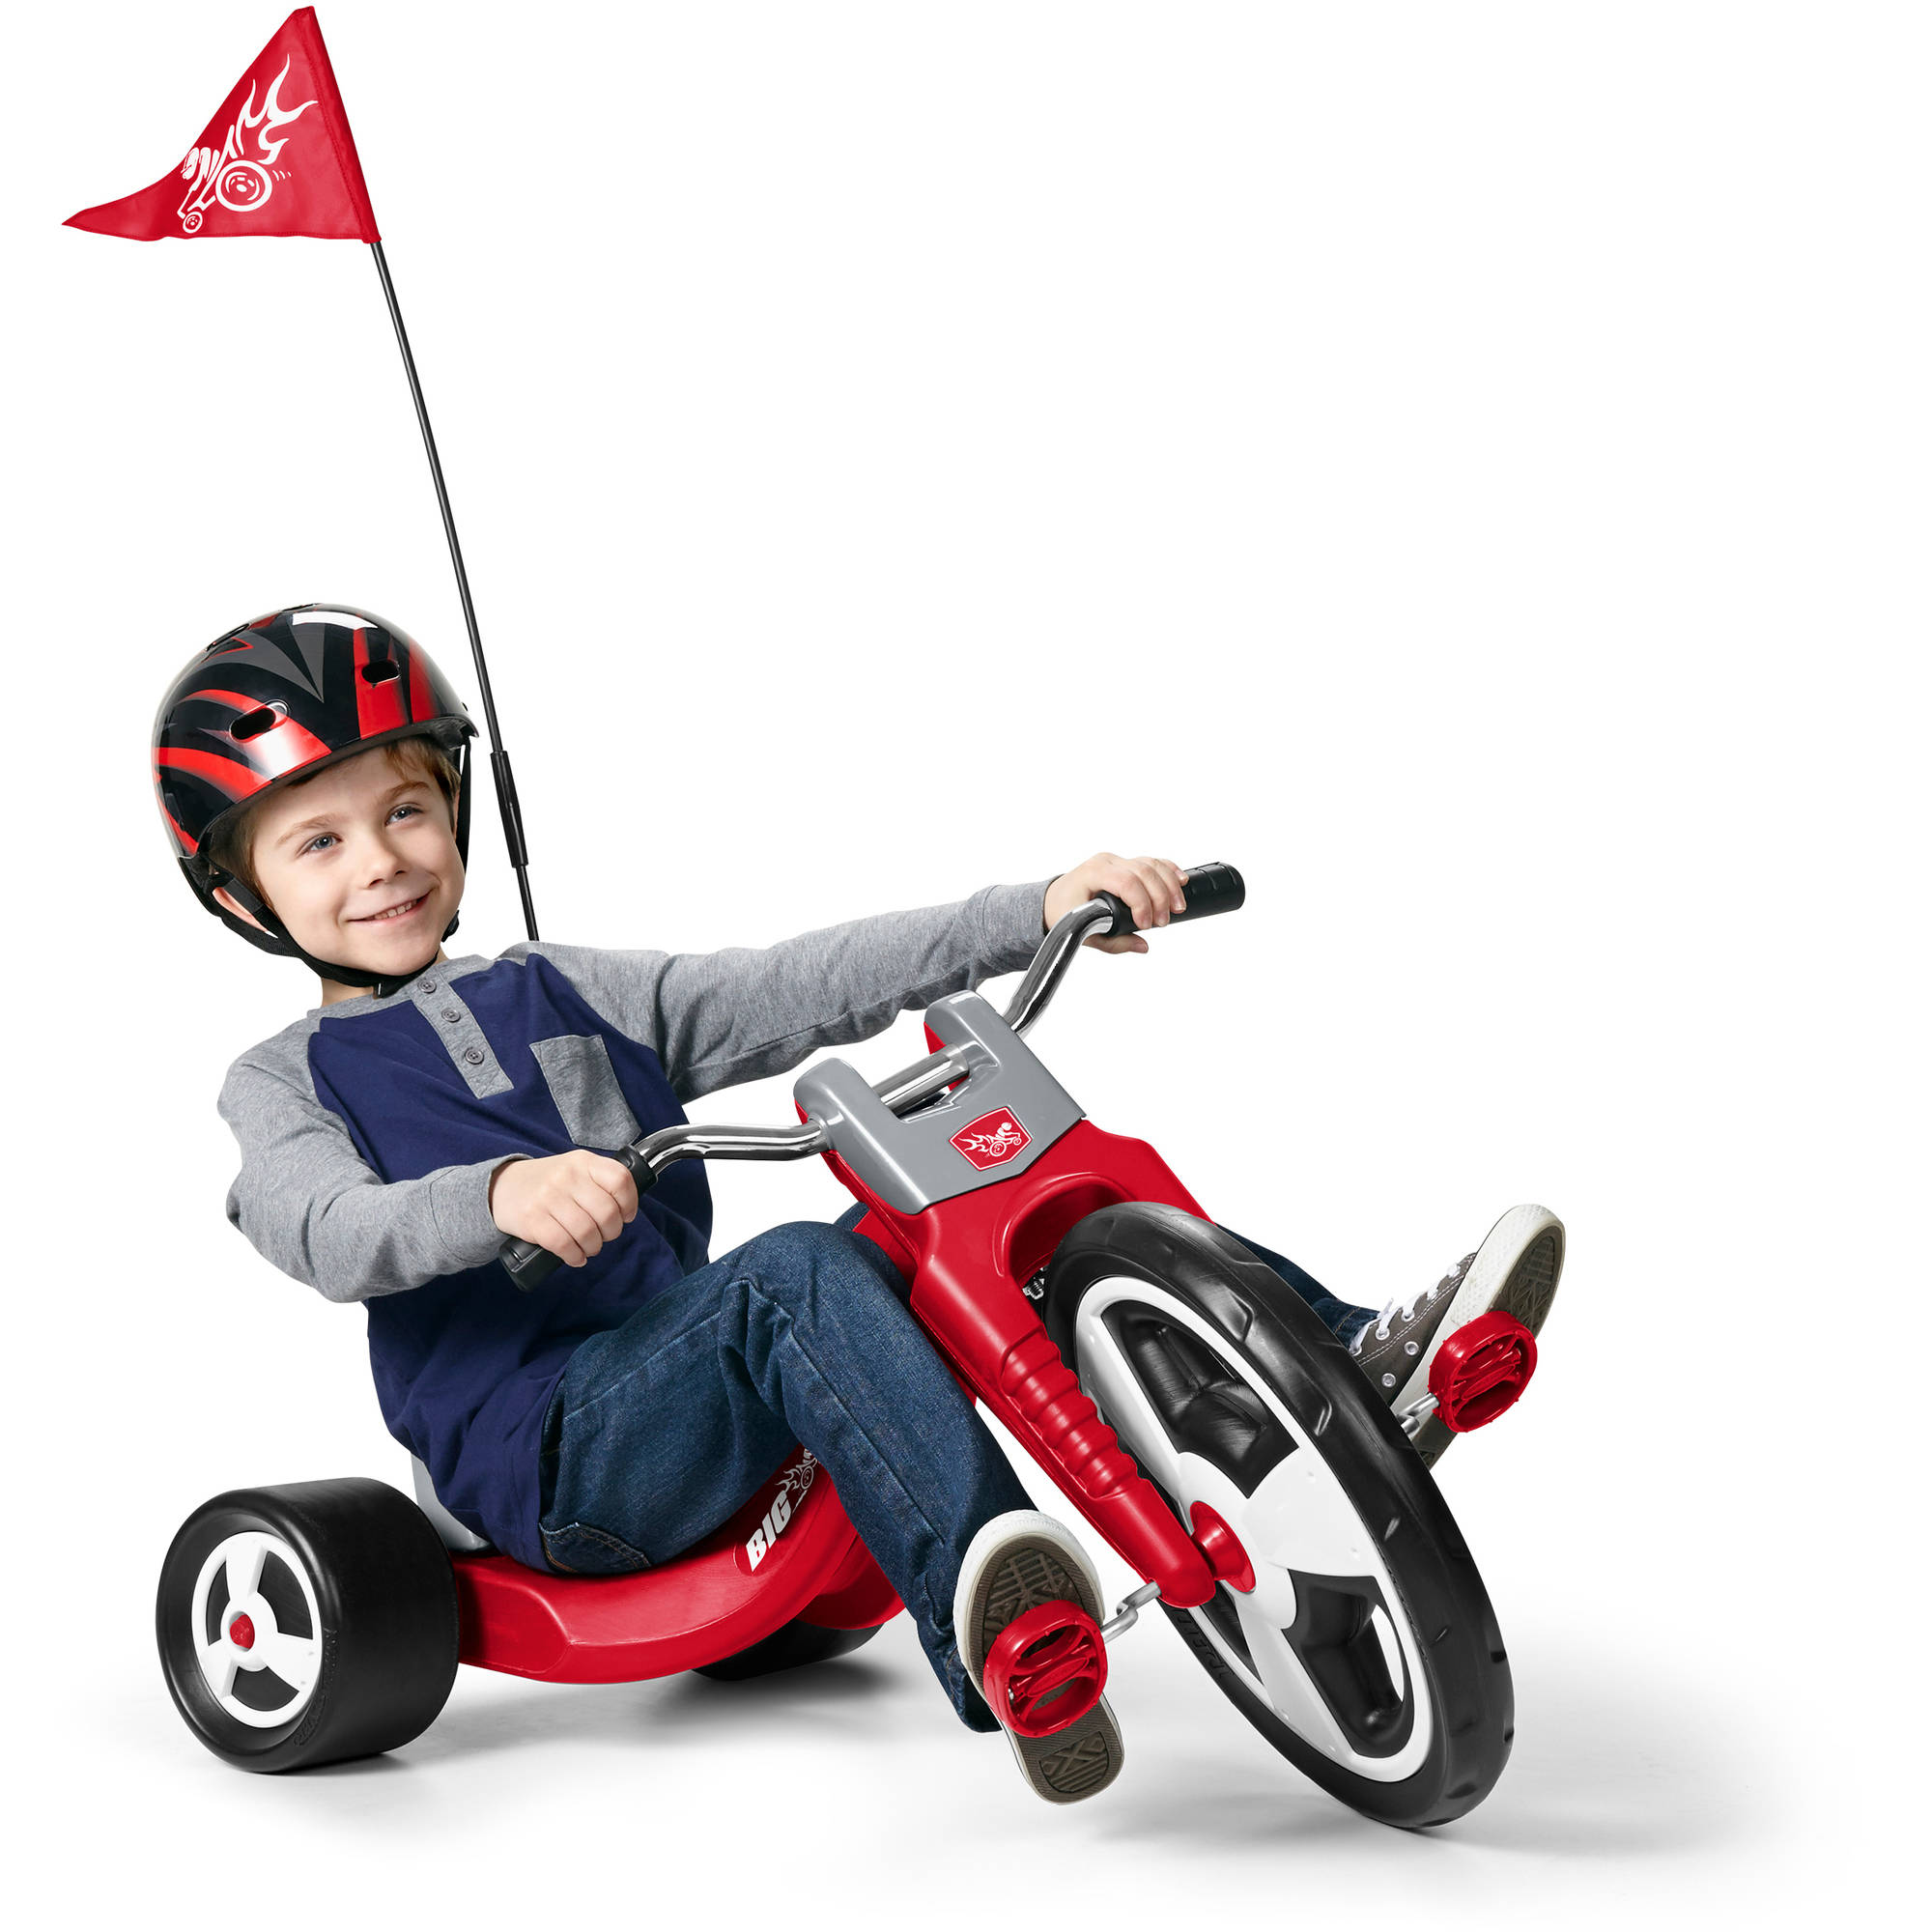 Radio Flyer Big Flyer Sport Trike, Red